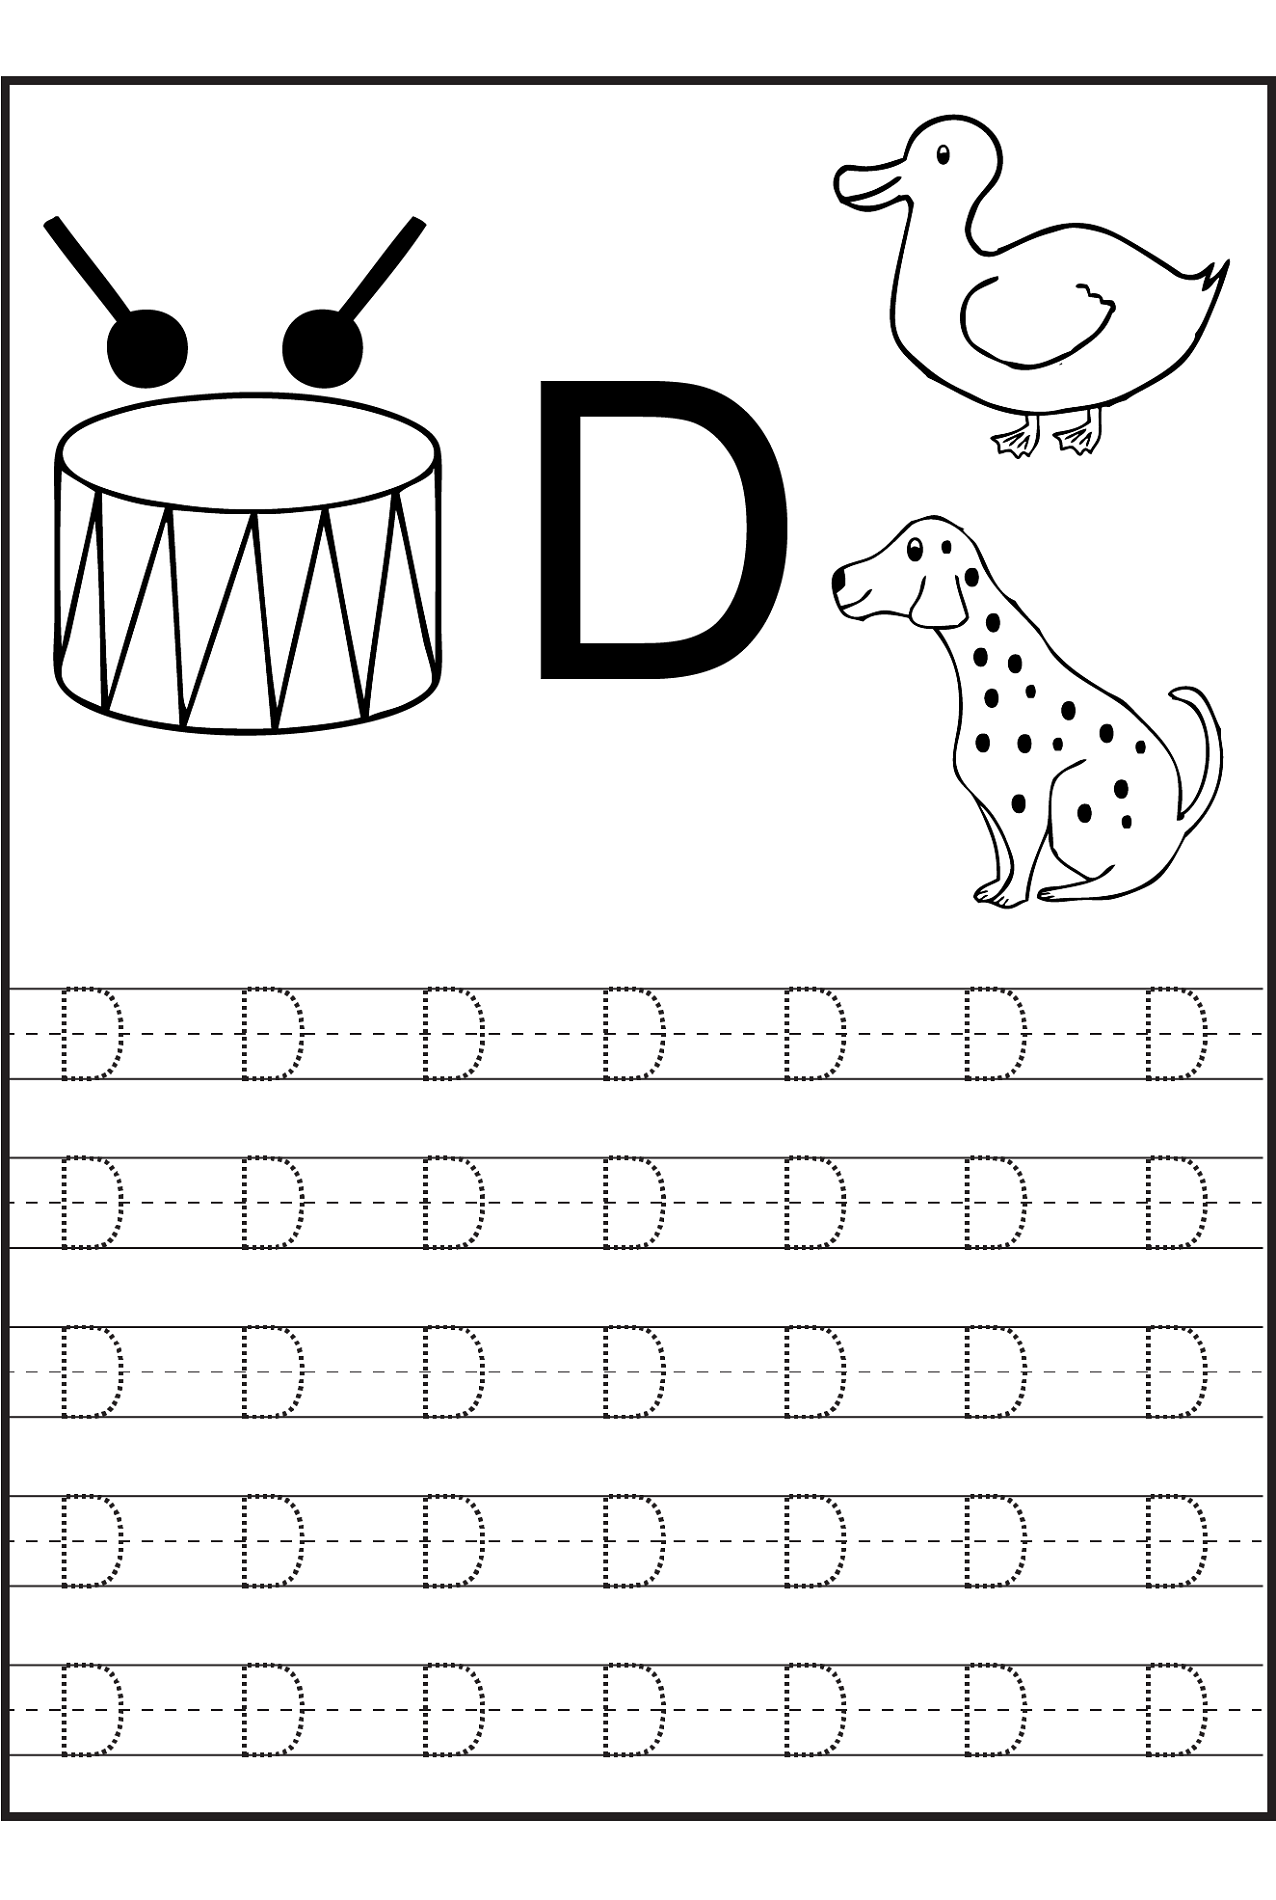 trace letter d worksheets activity shelter. Black Bedroom Furniture Sets. Home Design Ideas